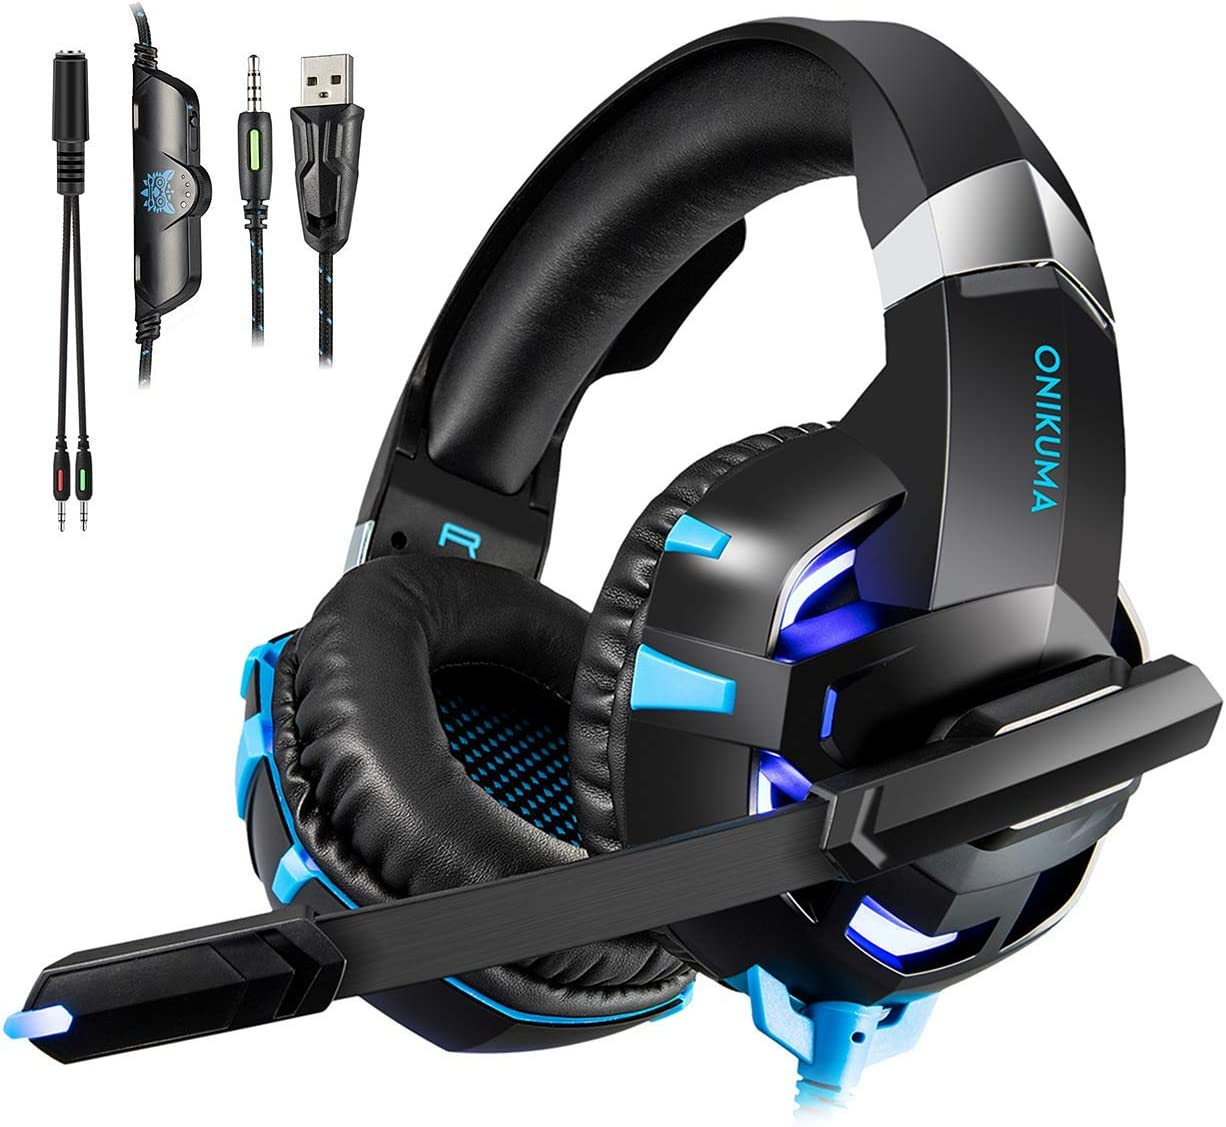 Gaming Headset for PS4 New Xbox one PC Mac Laptop, Professional 3.5mm Over Ear Headphones, Stereo USB Headset with LED Light and Noise canceling Mic for Games by Runying (Blue)